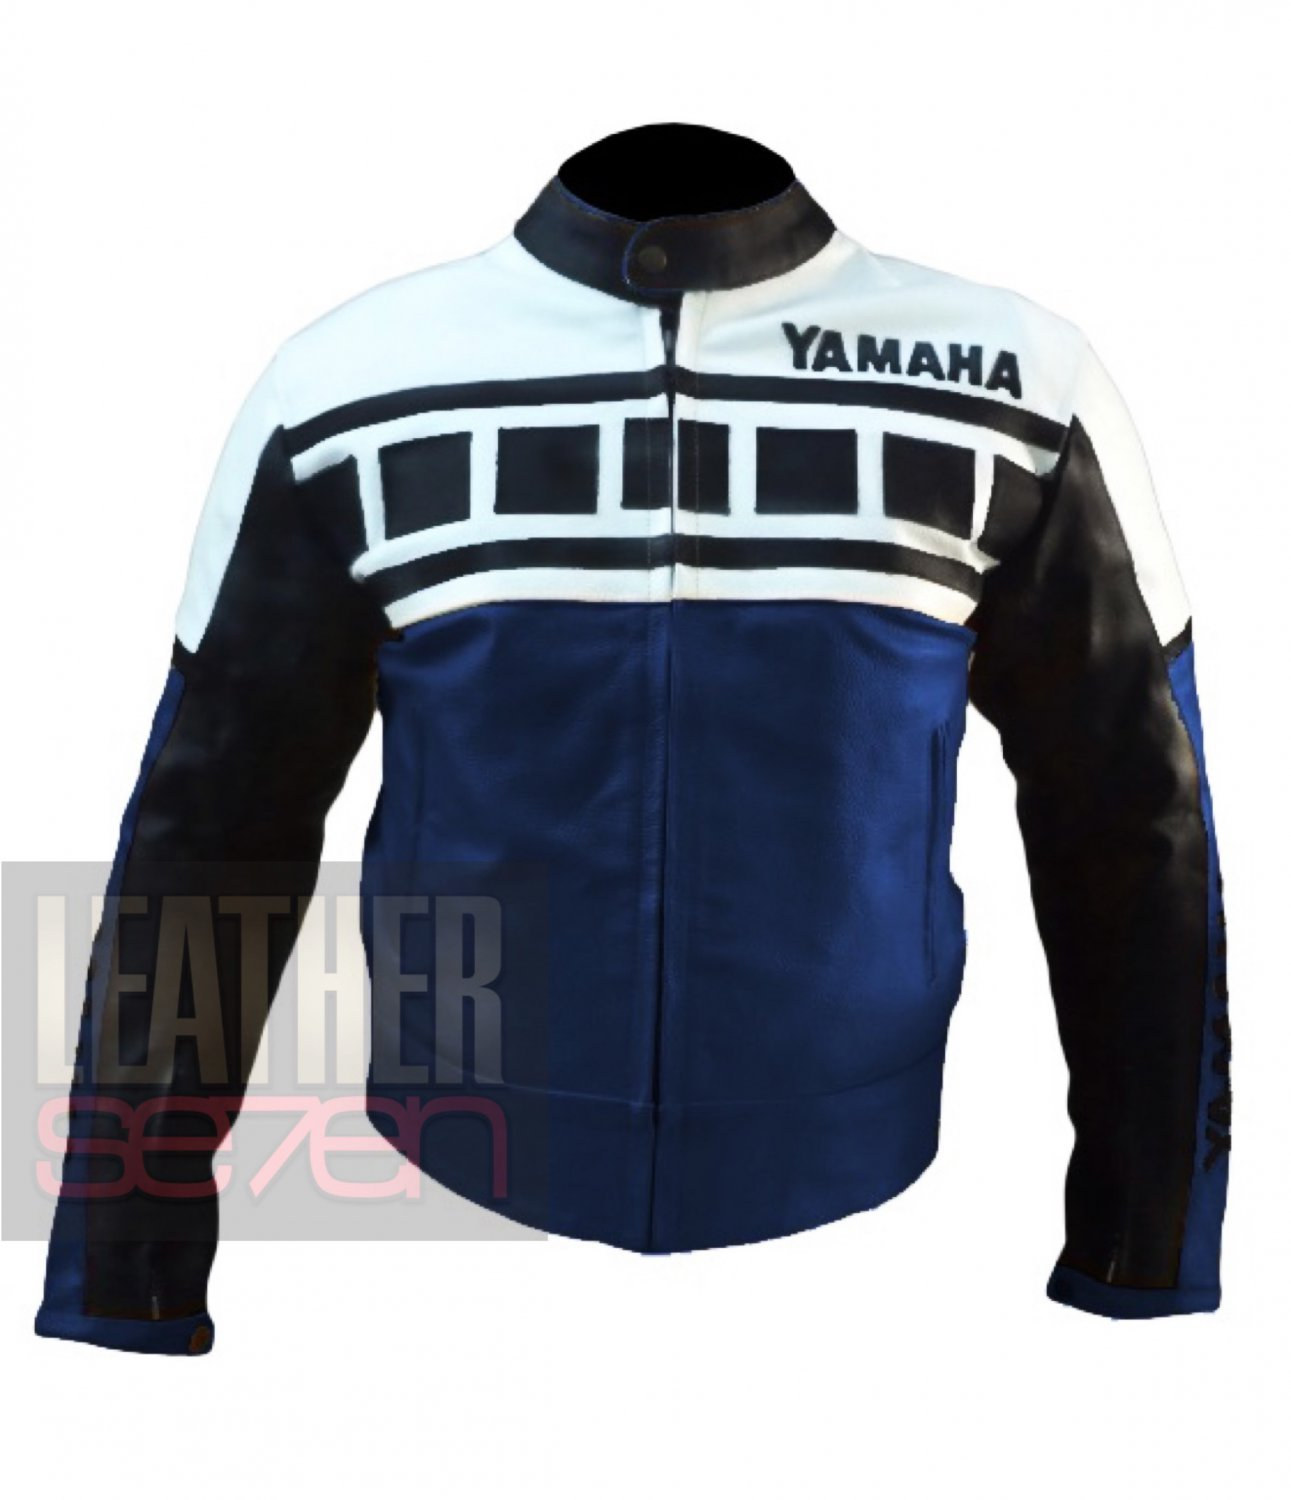 Yamaha 6728 Dark Blue Pure Cowhide Leather Jackets For Bike Racers